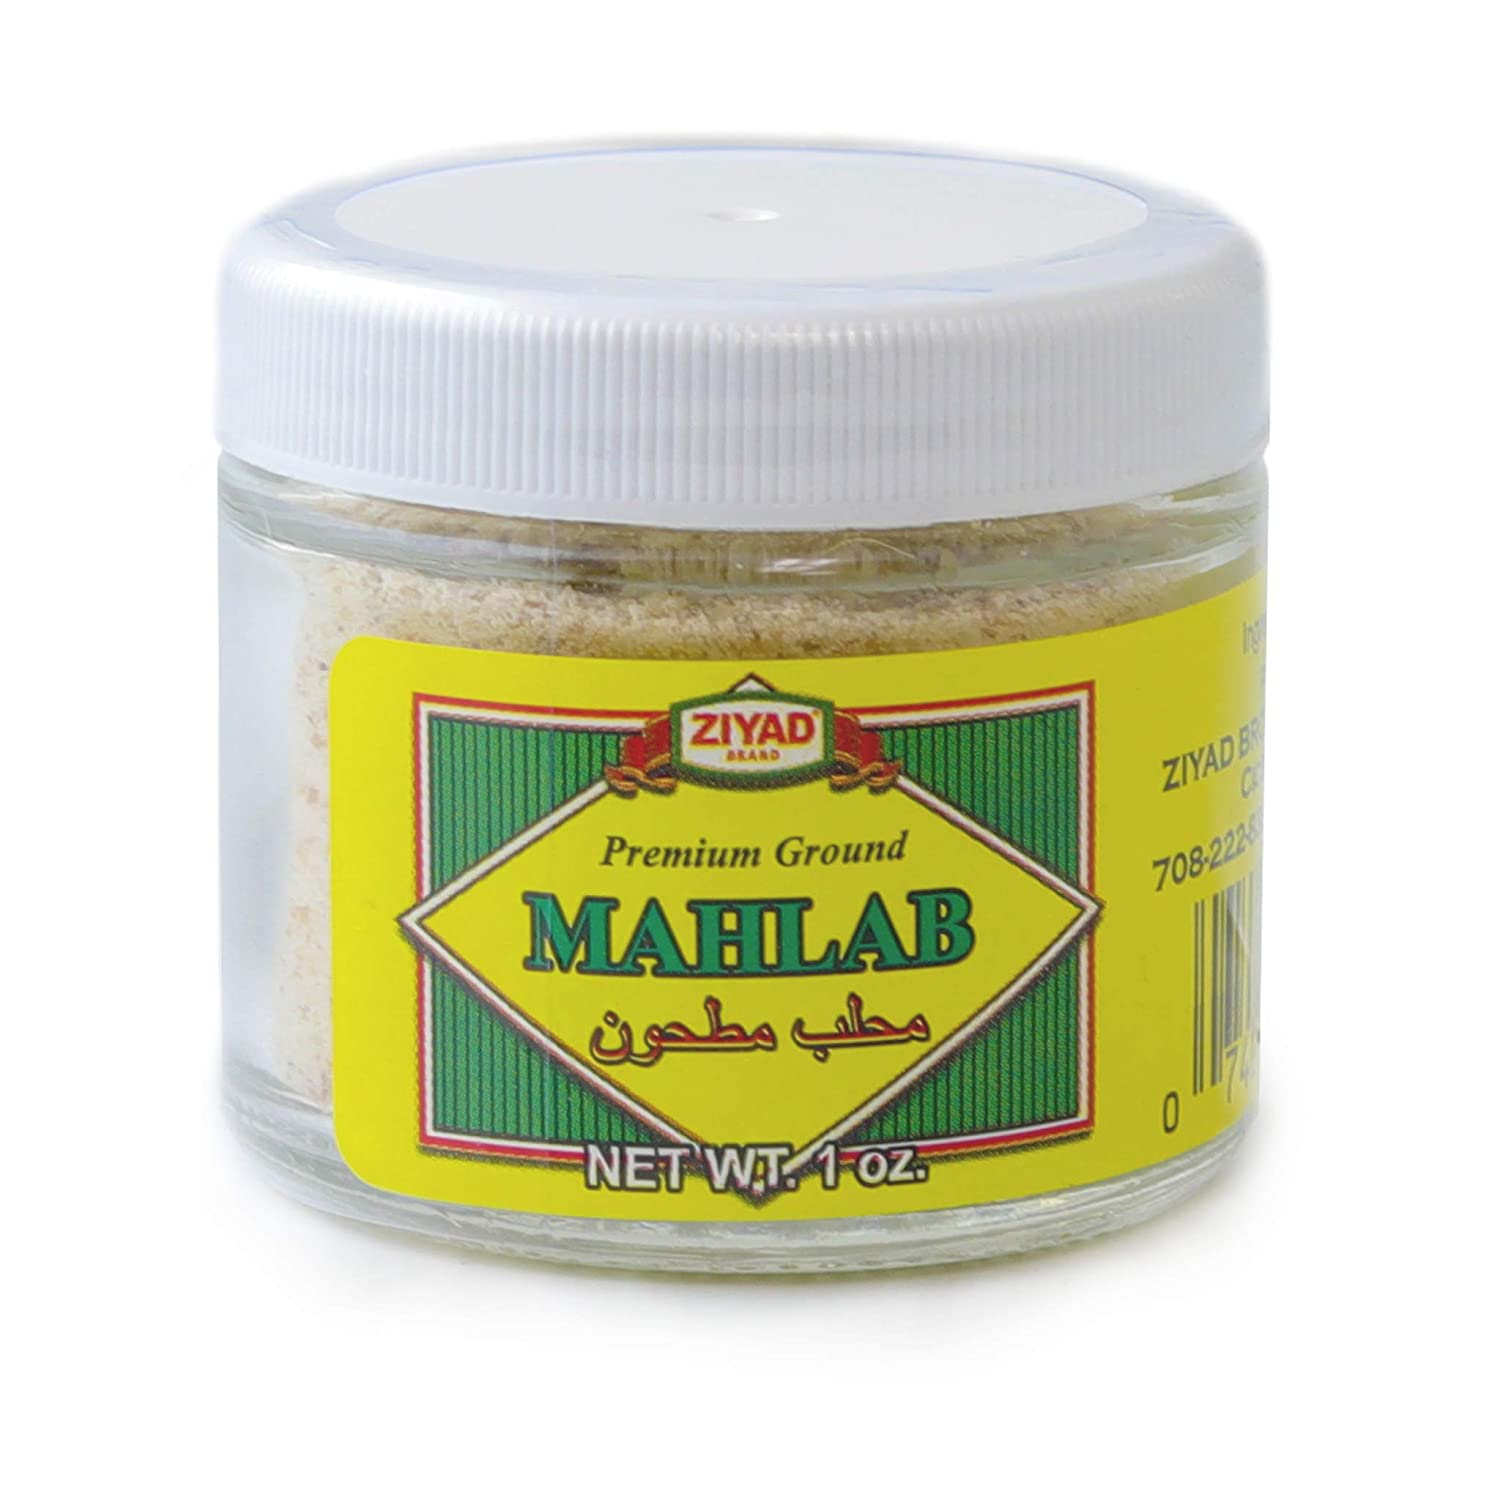 Ziyad Gourmet Ground Mahlab, Mahlepi, A Hint of Cherry Spice, 100% All-Natural, Additives No Preservatives, Perfect for Pastries and Baking! 1 oz